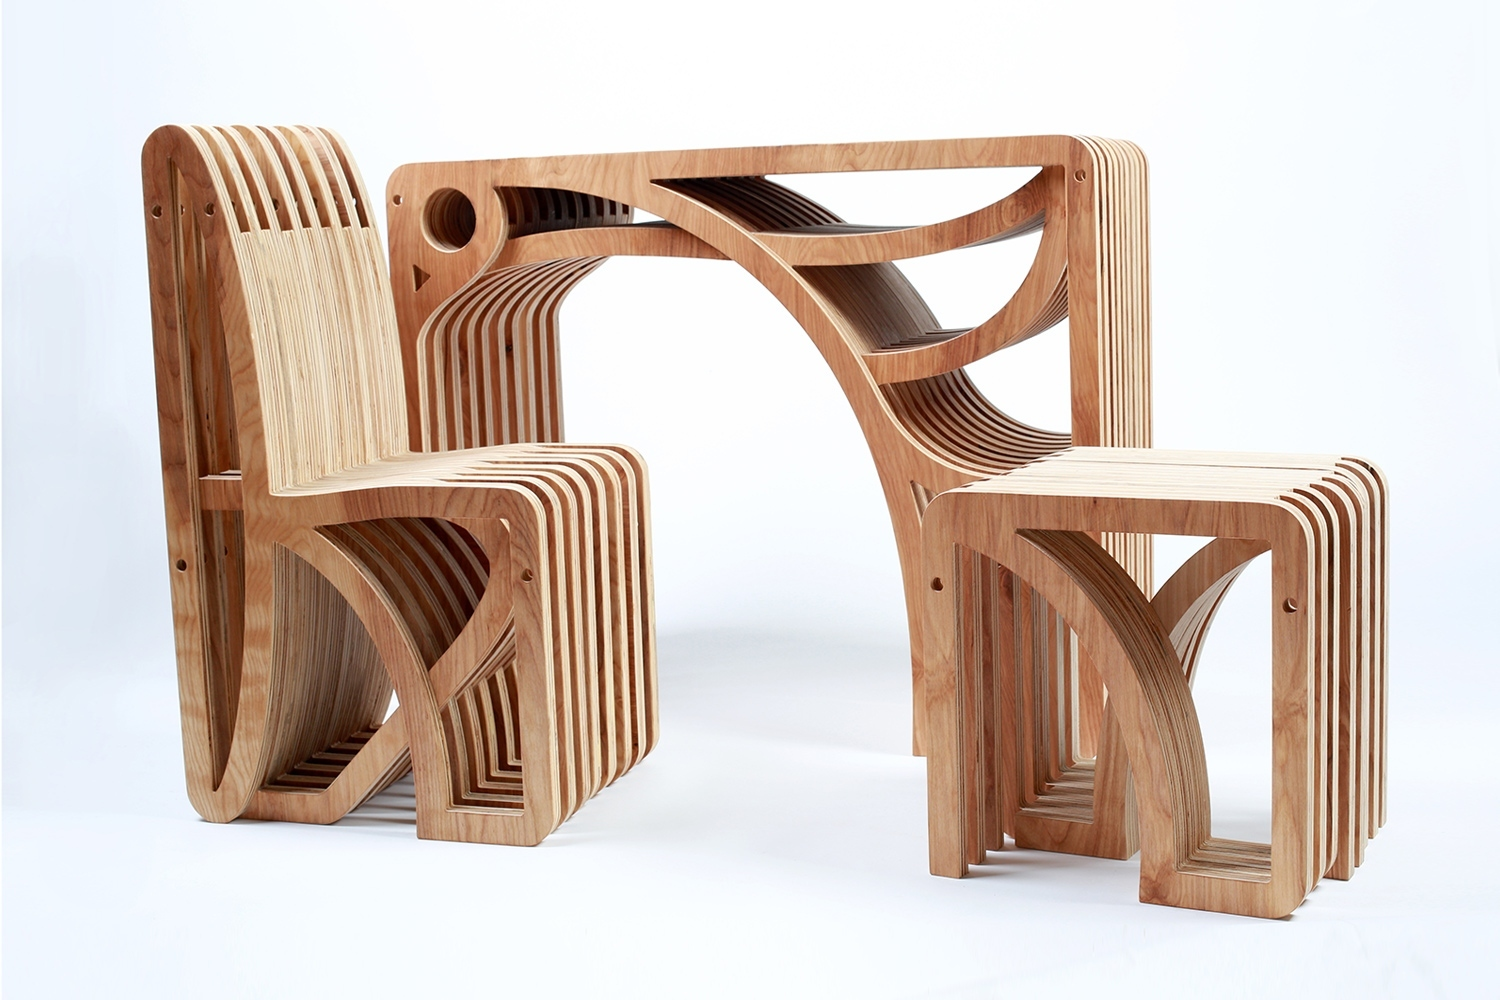 Pieces Modular Furniture System Emily Carr University Of Art